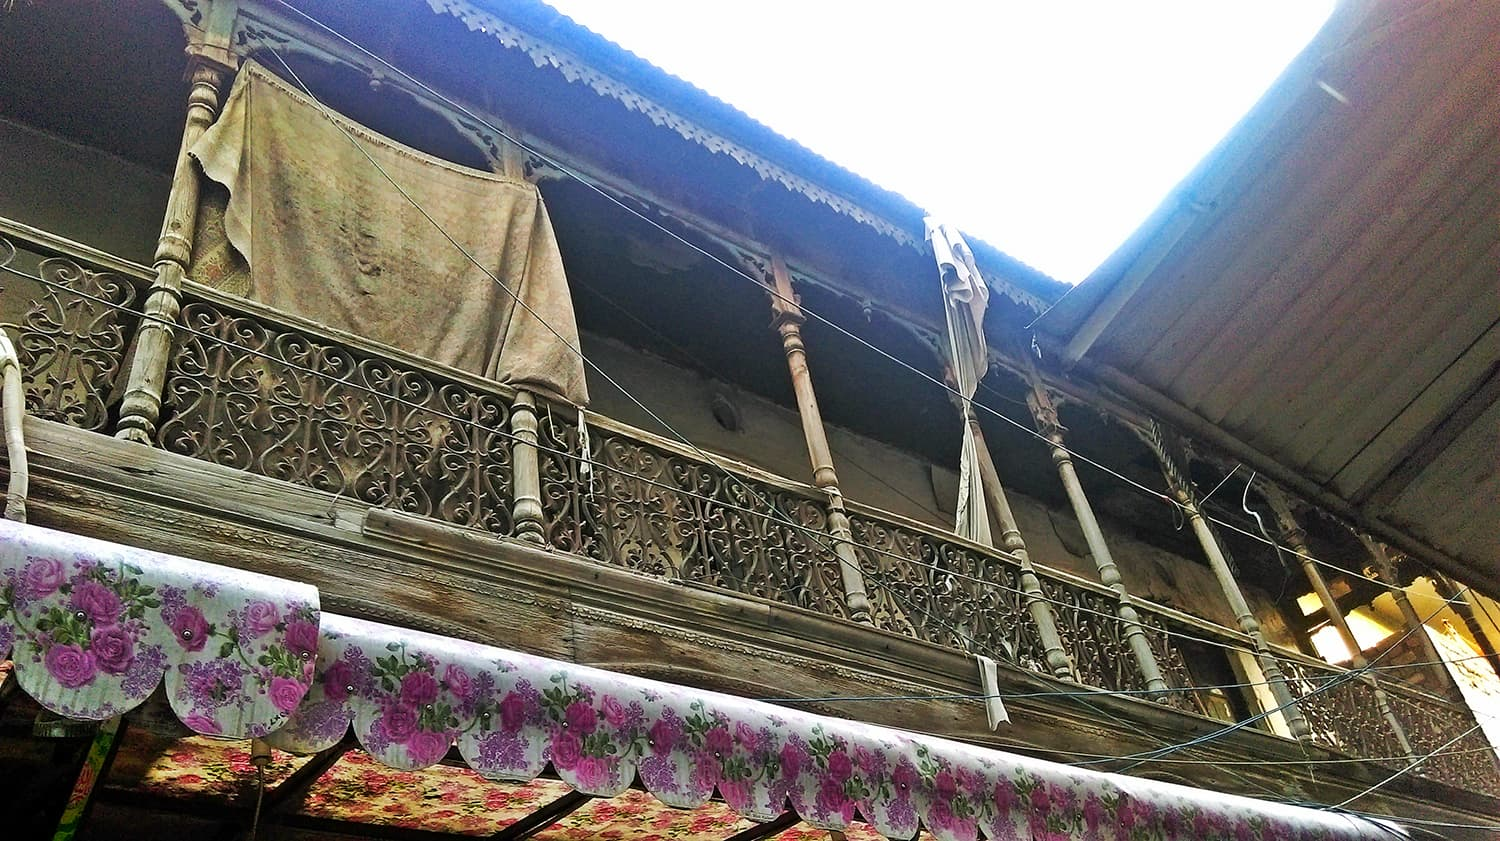 A colonial style wooden gallery of Qasai Gali.